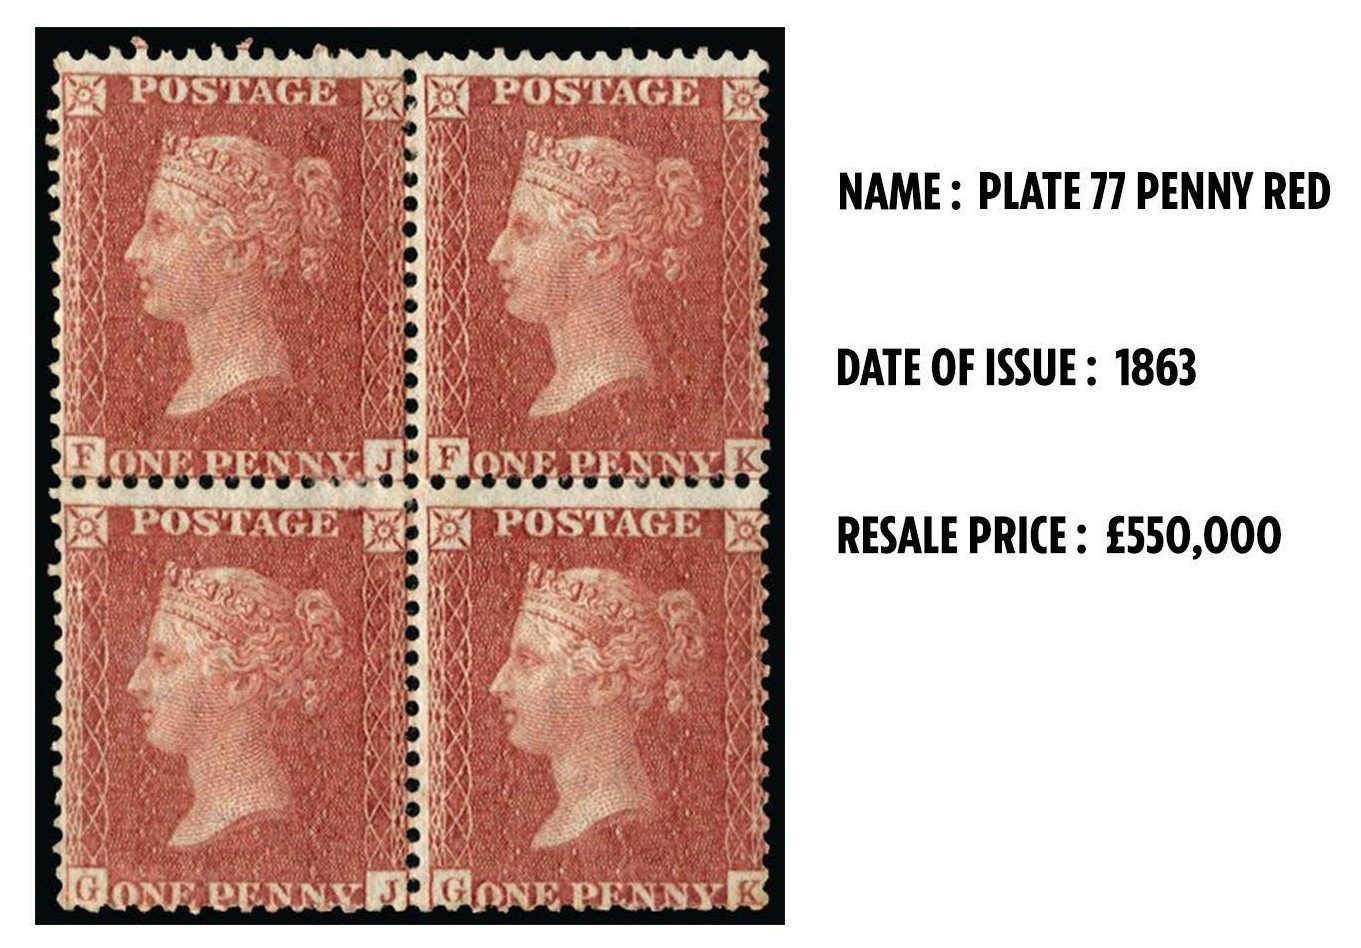 A rare version of the Plate 77 Penny Red stamp sold for £550,000 in 2012